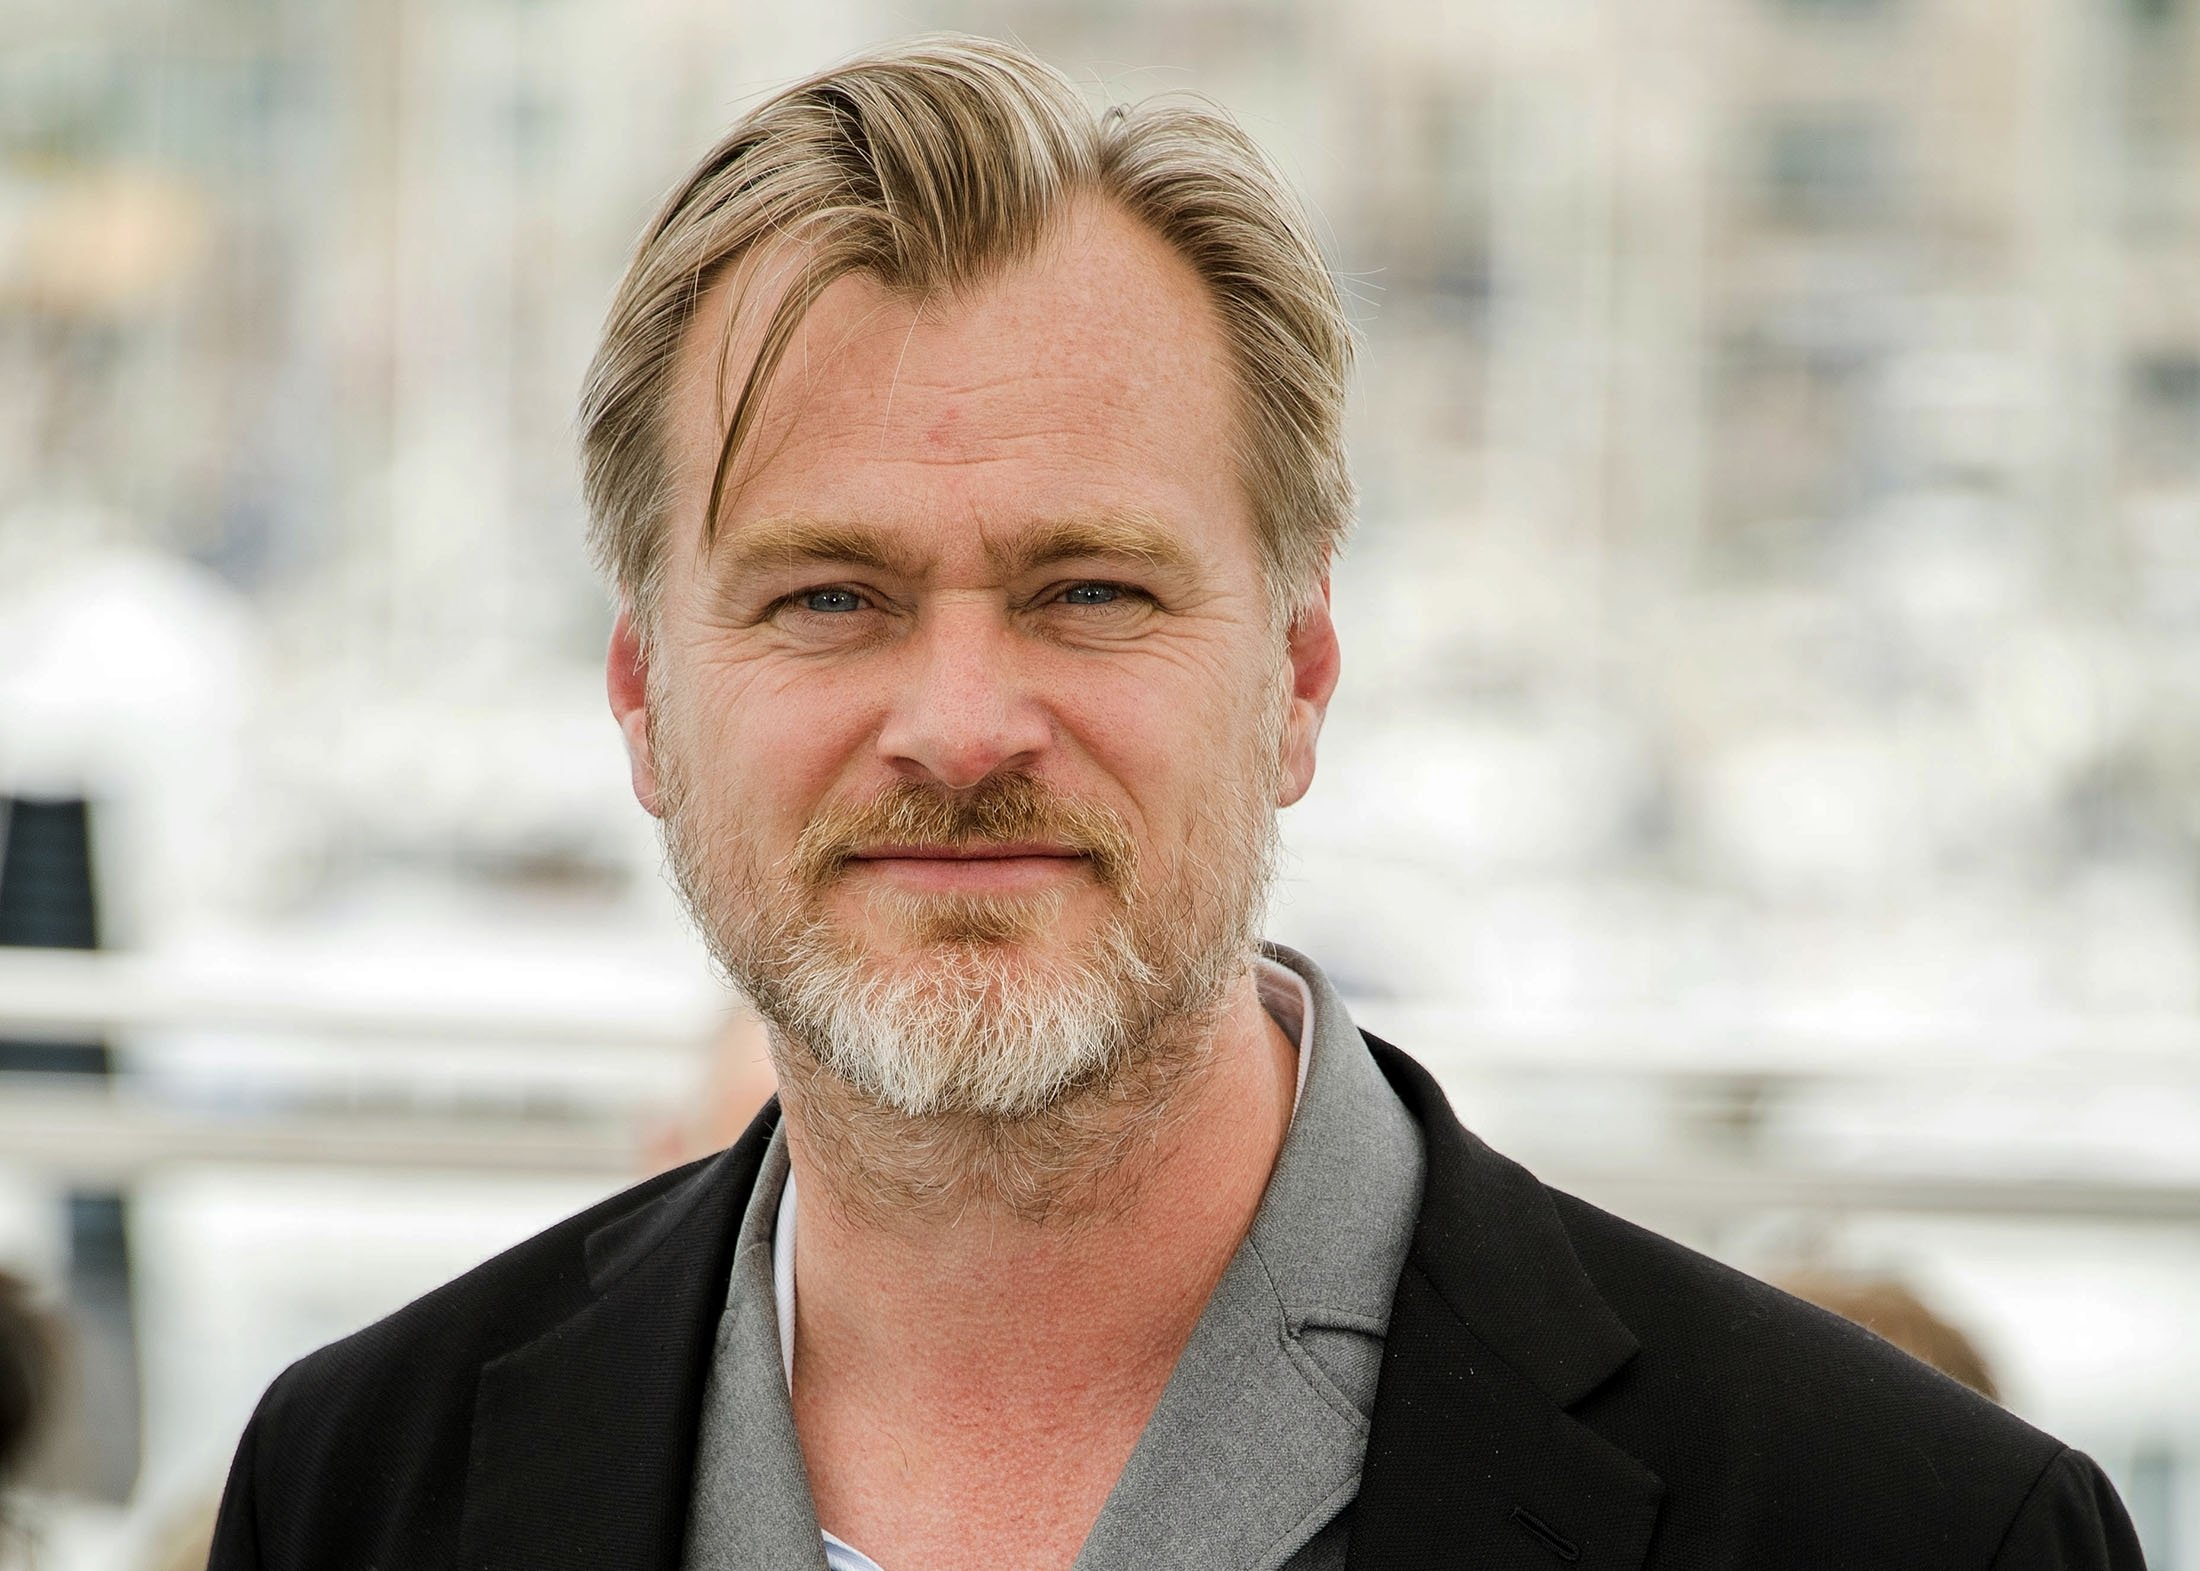 Director Christopher Nolan poses during a photocall at the 71st international film festival, Cannes, southern France, May 12, 2018. (AP Photo)